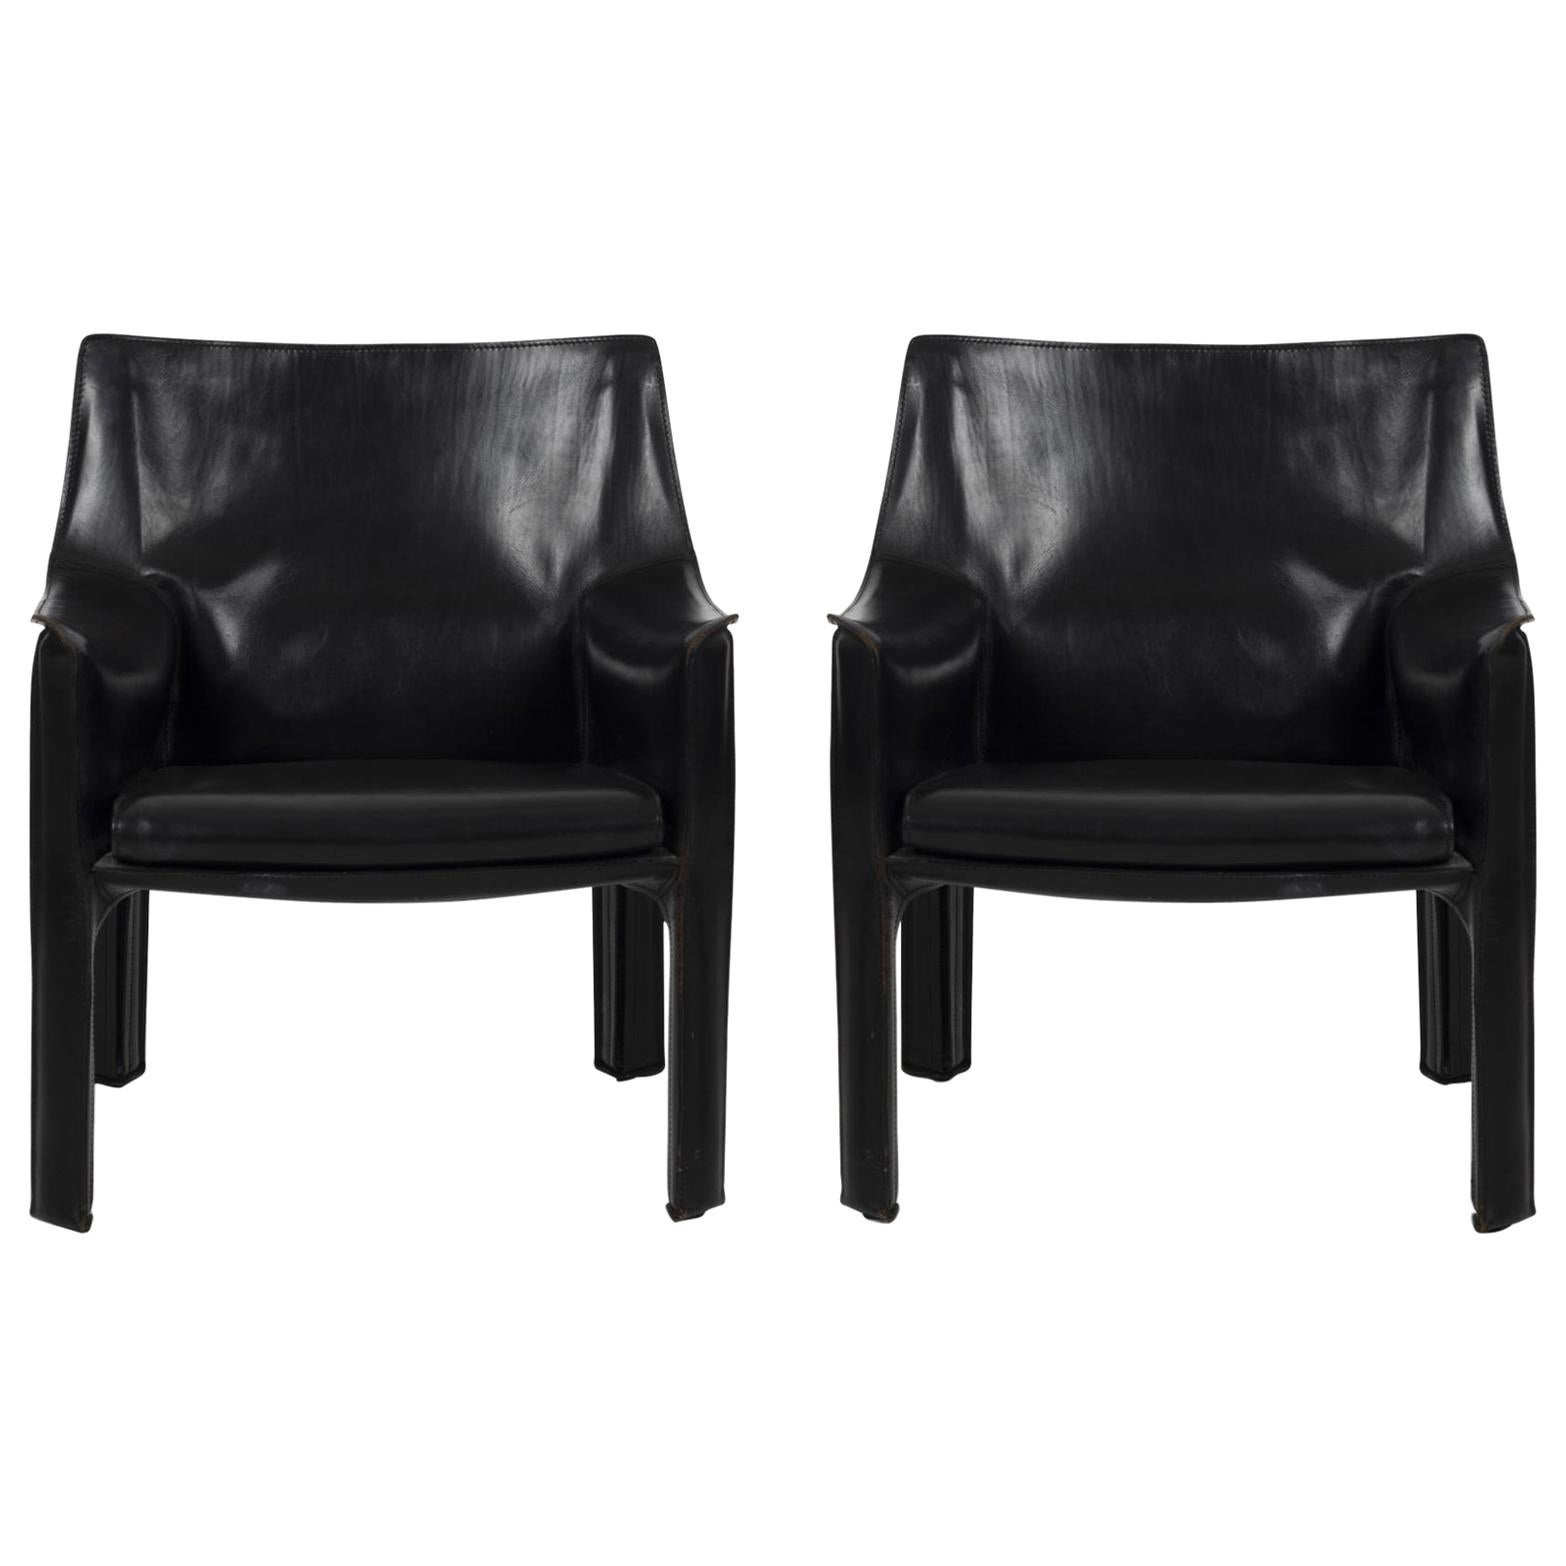 """Pair of Mario Bellini """"Cab"""" Lounge Chairs for Cassina in Nero Leather"""